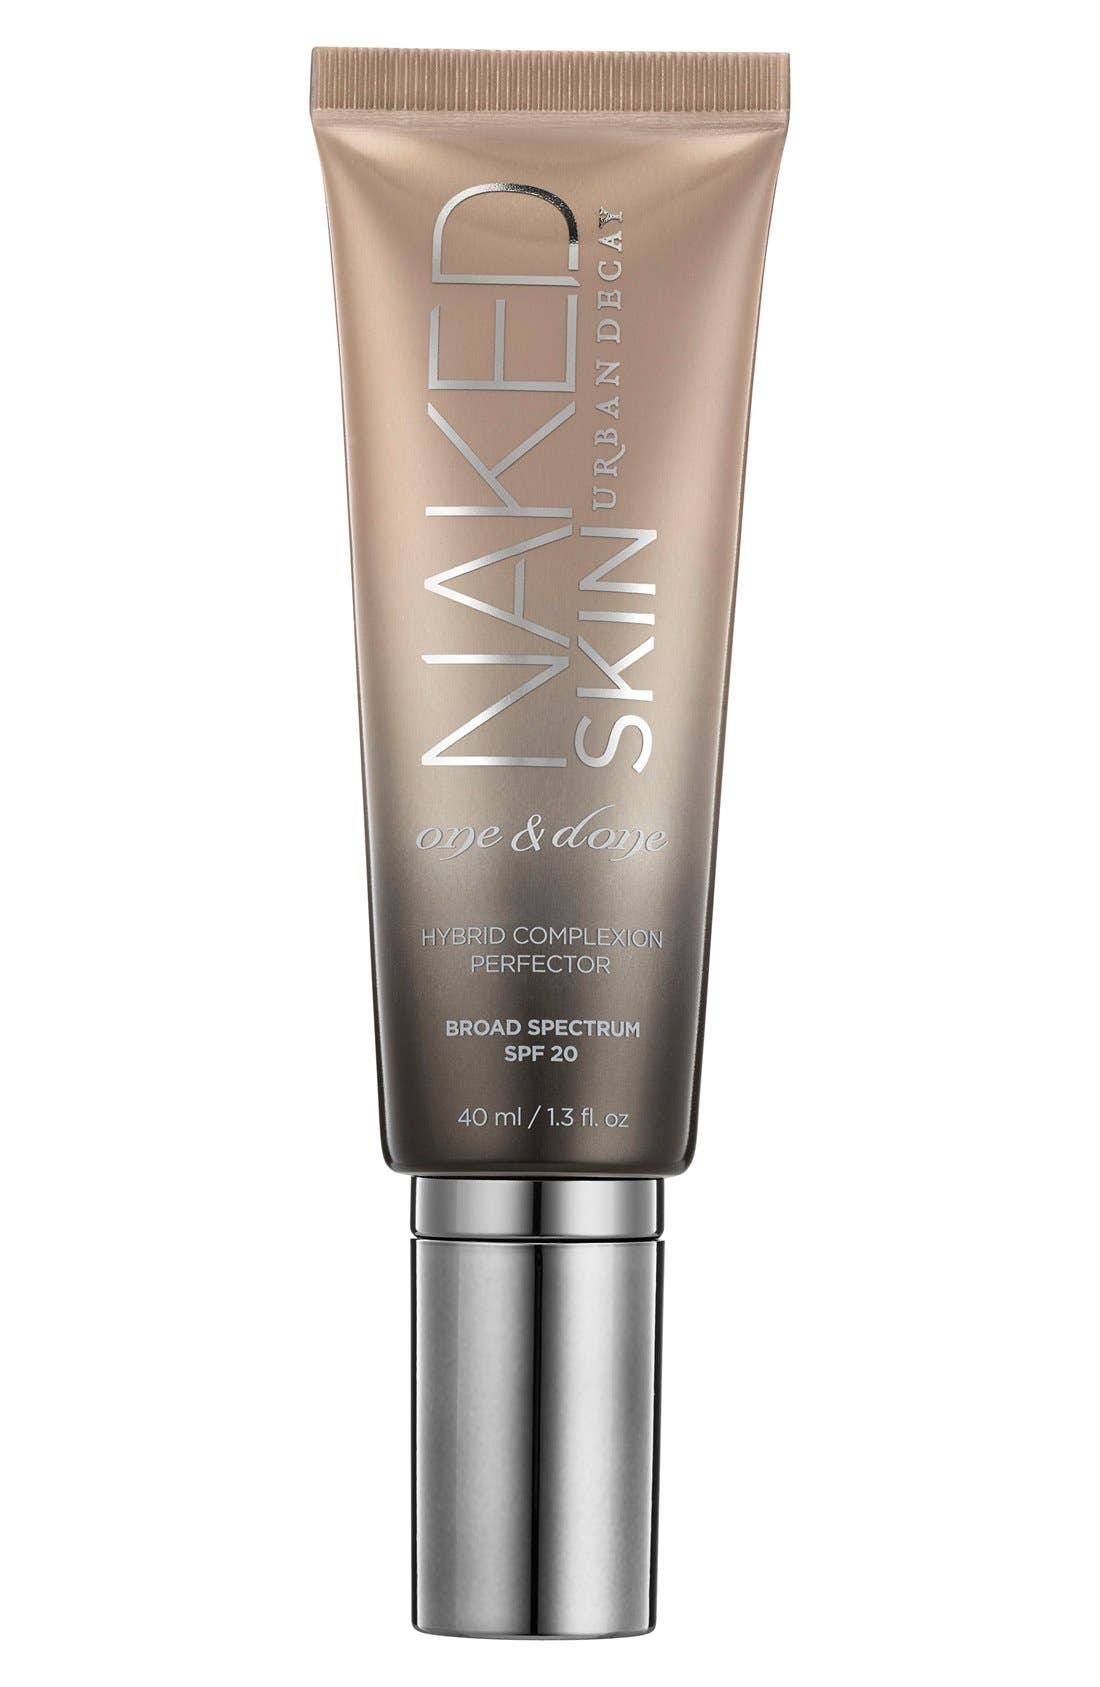 Urban Decay 'Naked Skin' One & Done Hybrid Complexion Perfector Broad Spectrum SPF 20